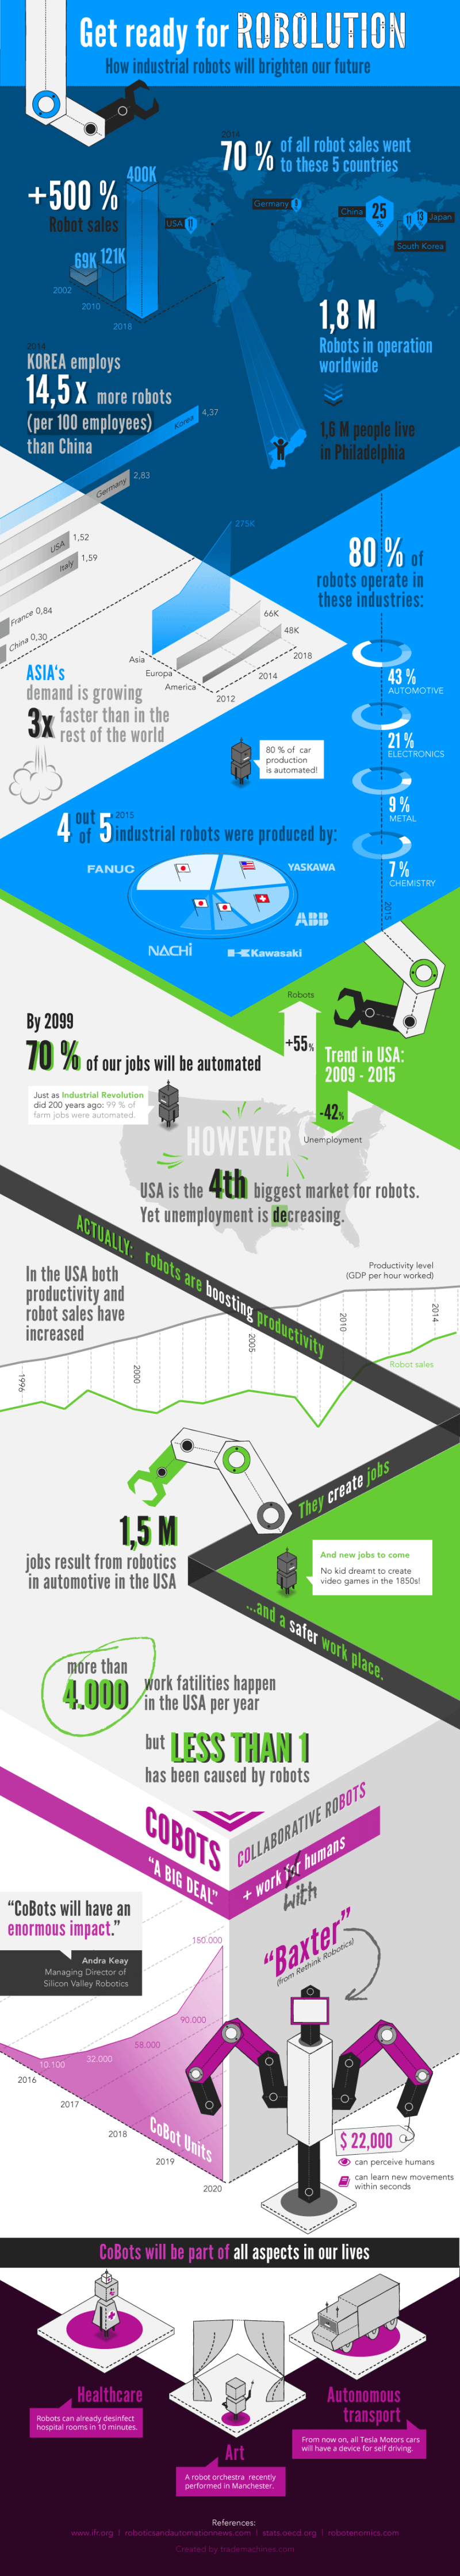 Get Ready For Robolution infographic